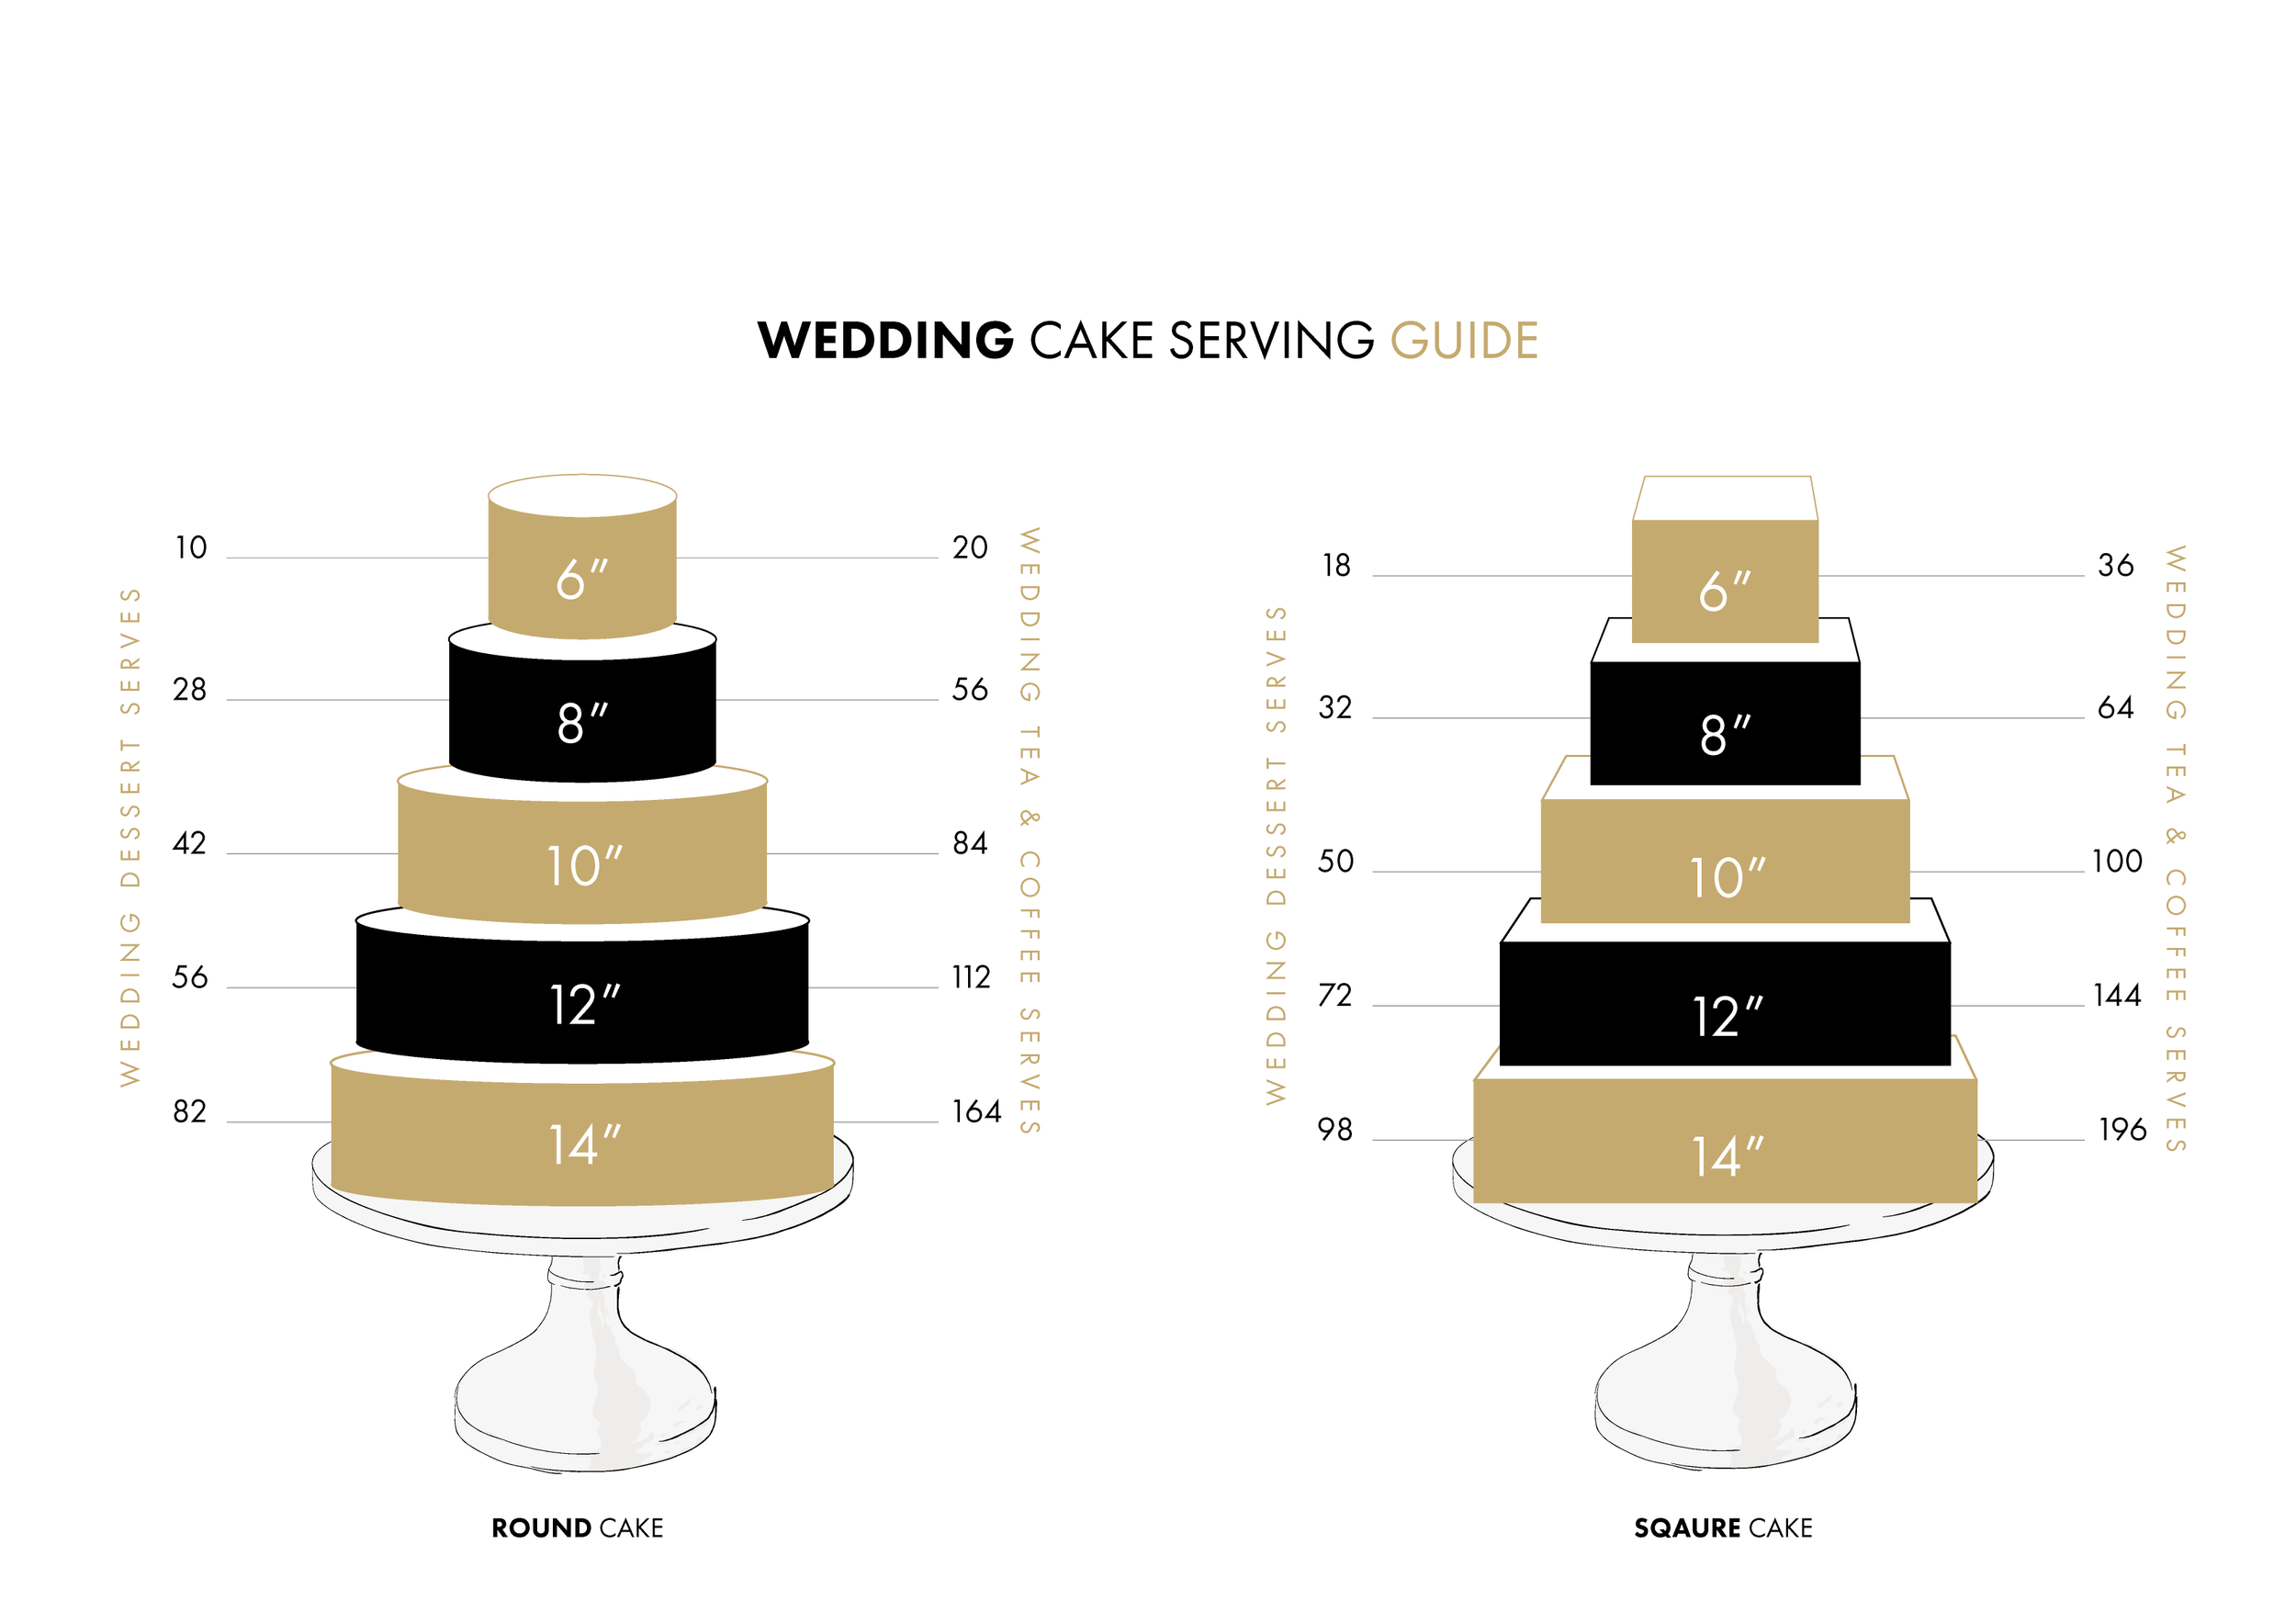 WeddingCakeServingSize-1.png